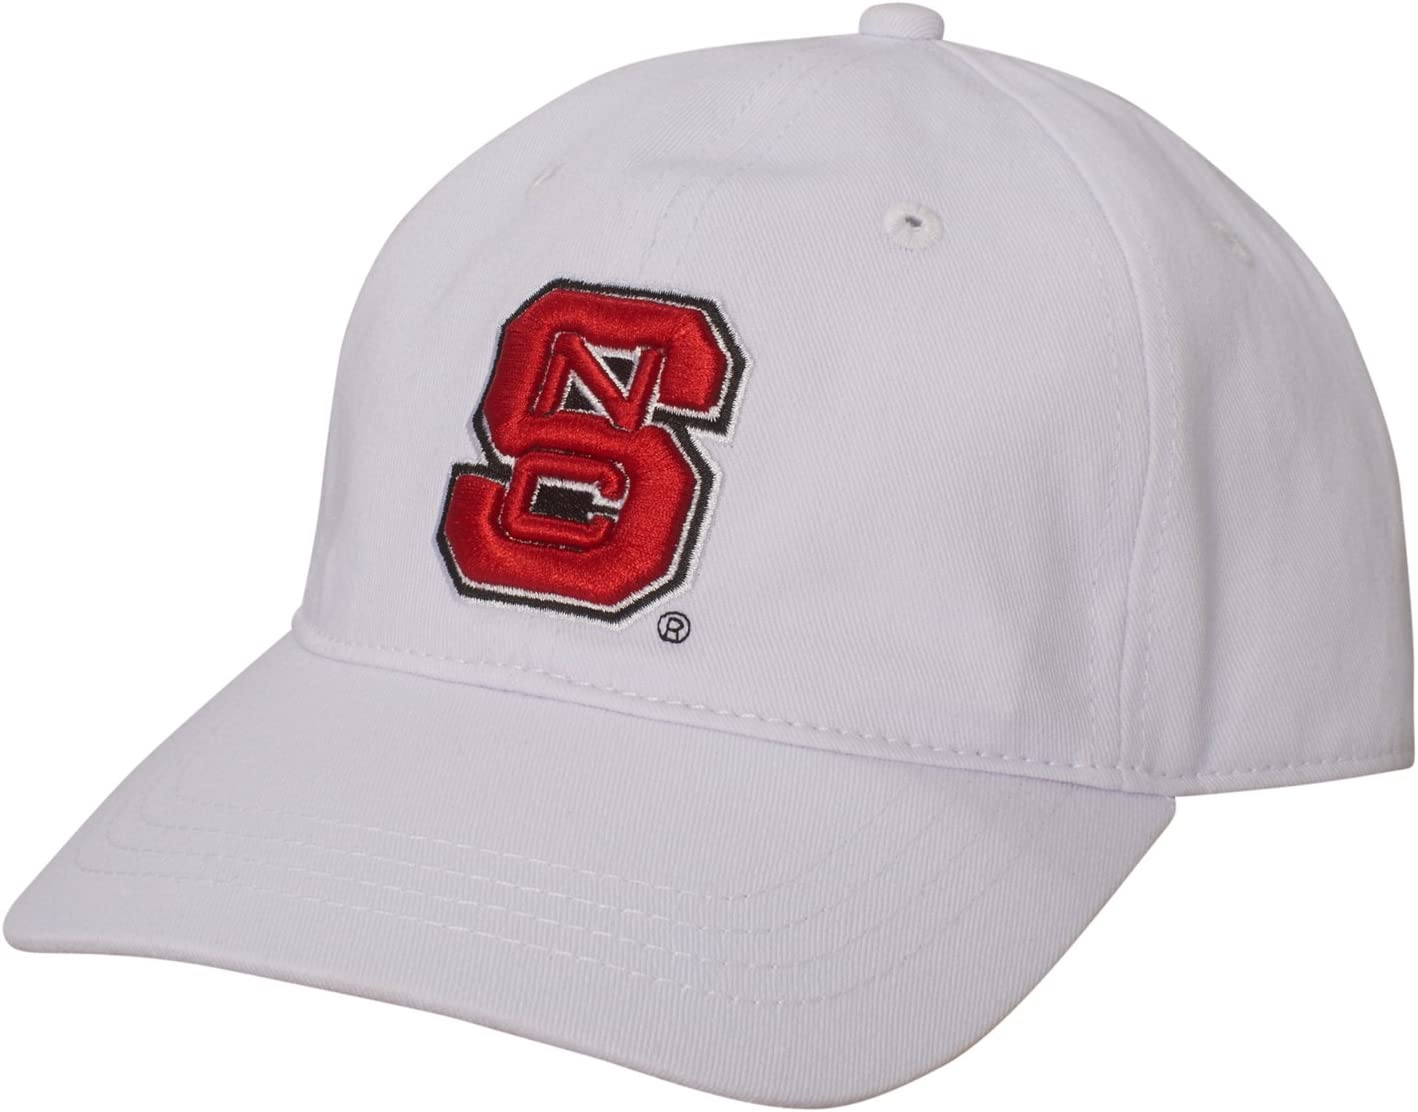 Top of the World NCAA NC State Wolfpack Adjustable Visor Gray